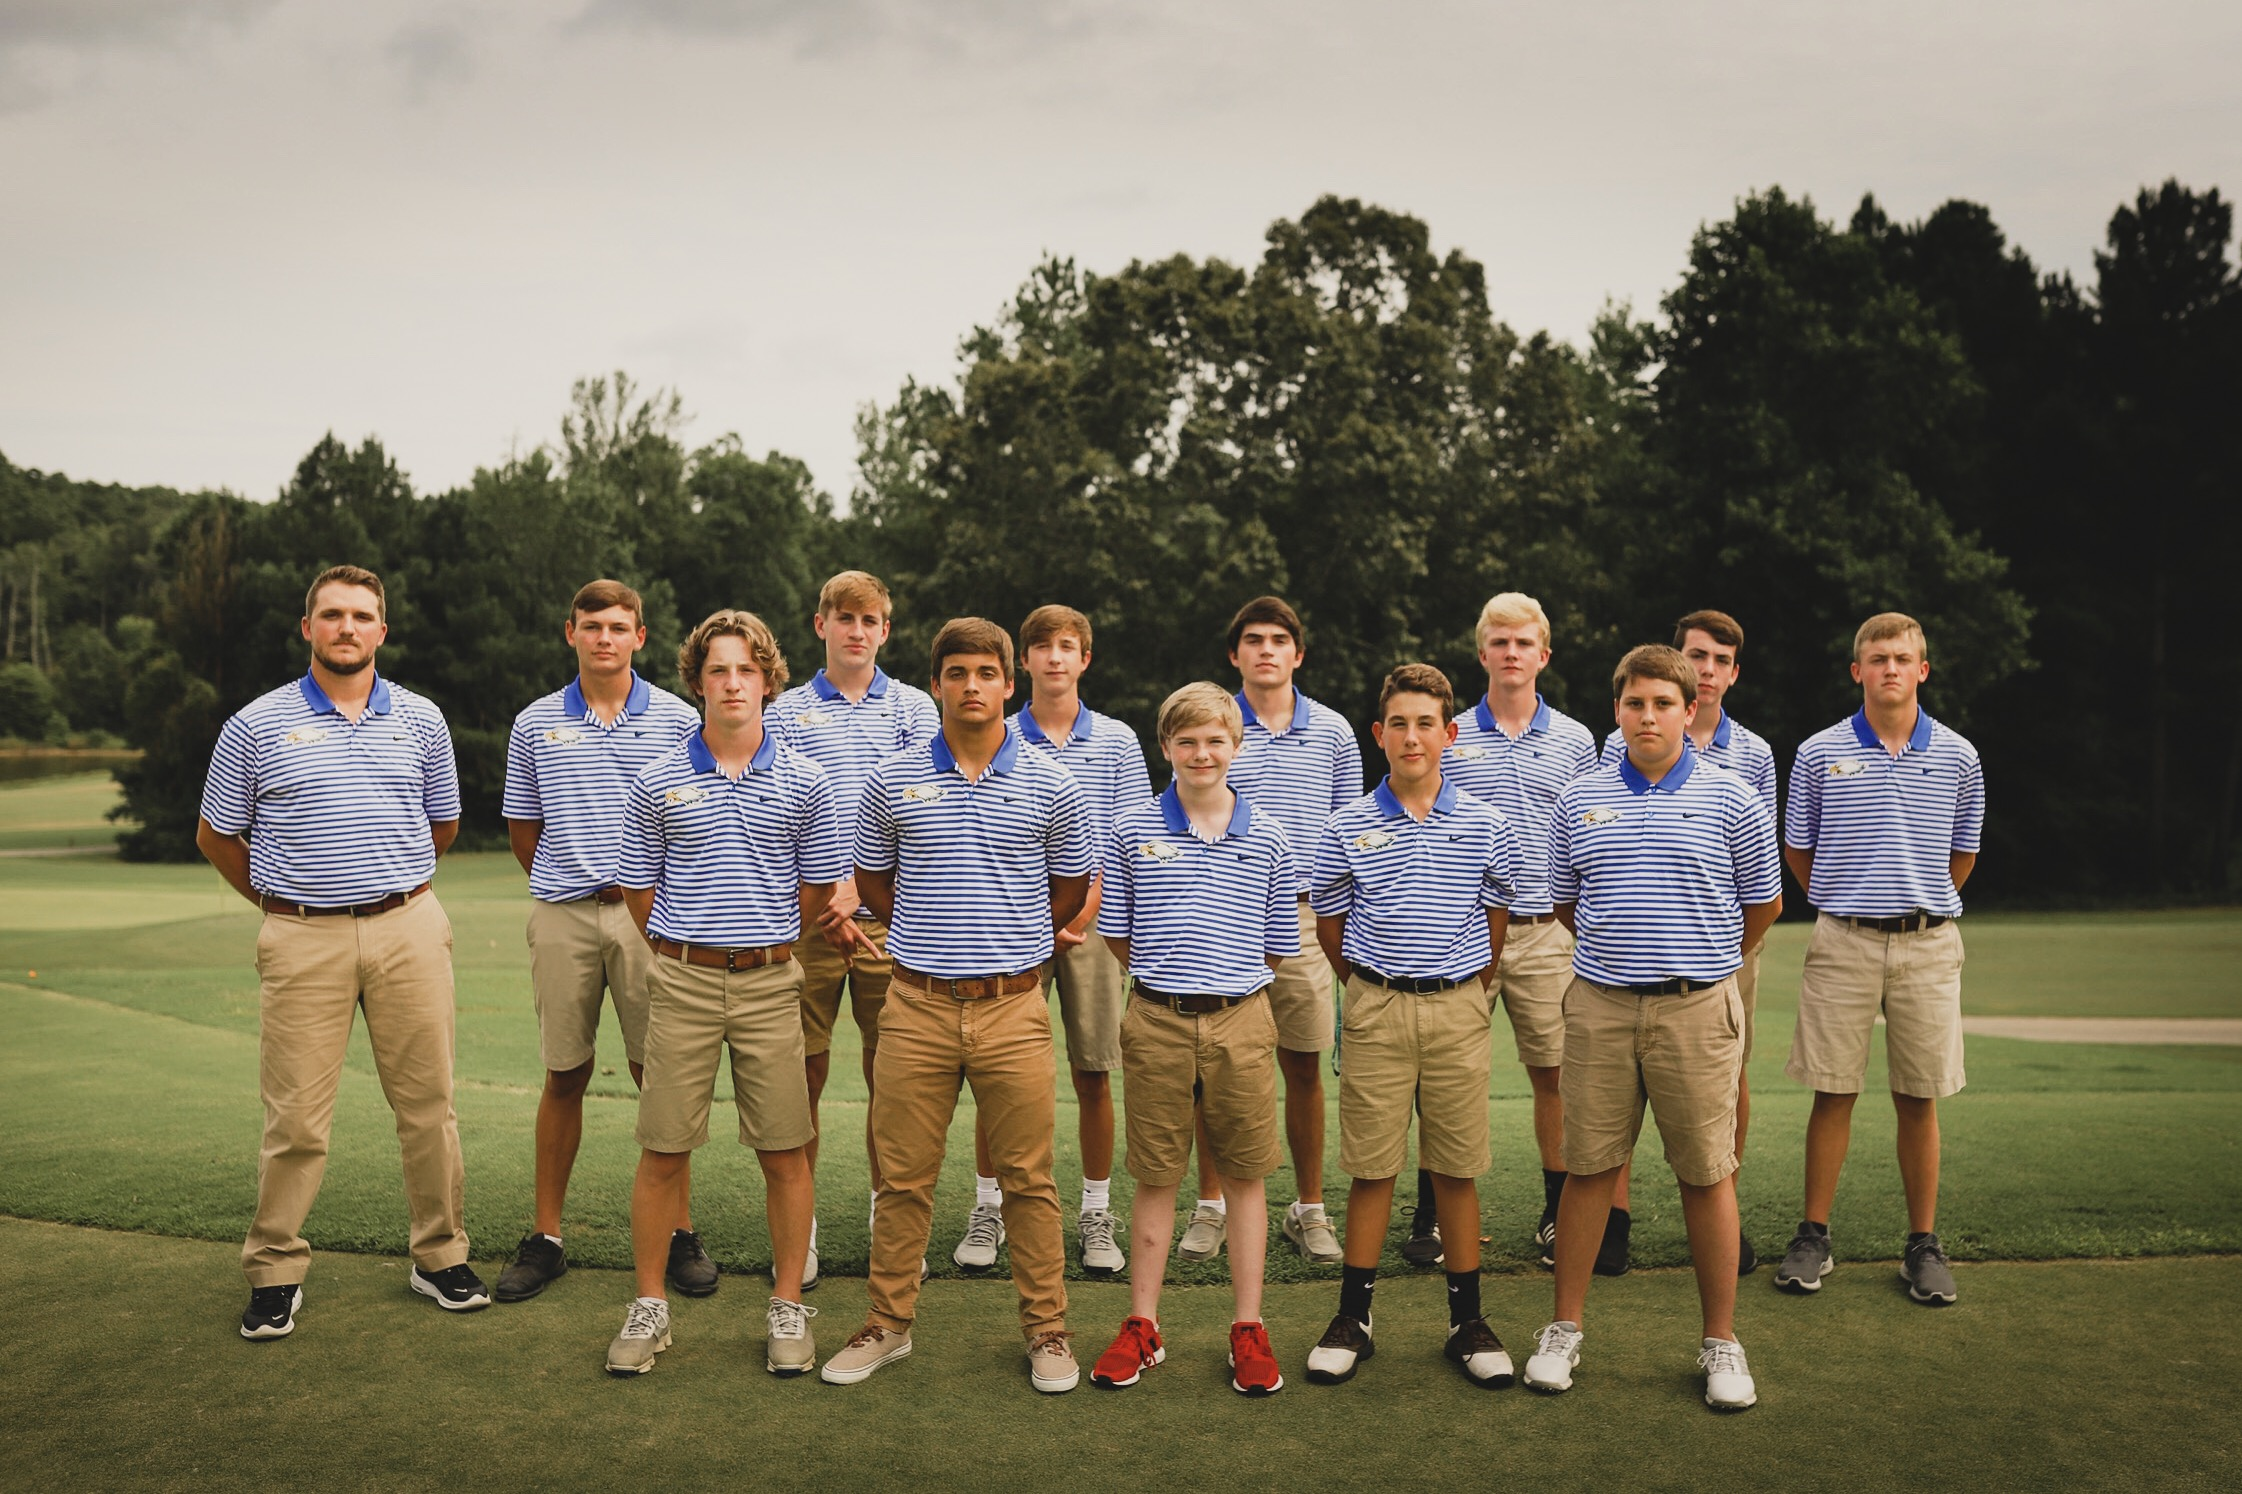 Picture of the Boys' Golf Team